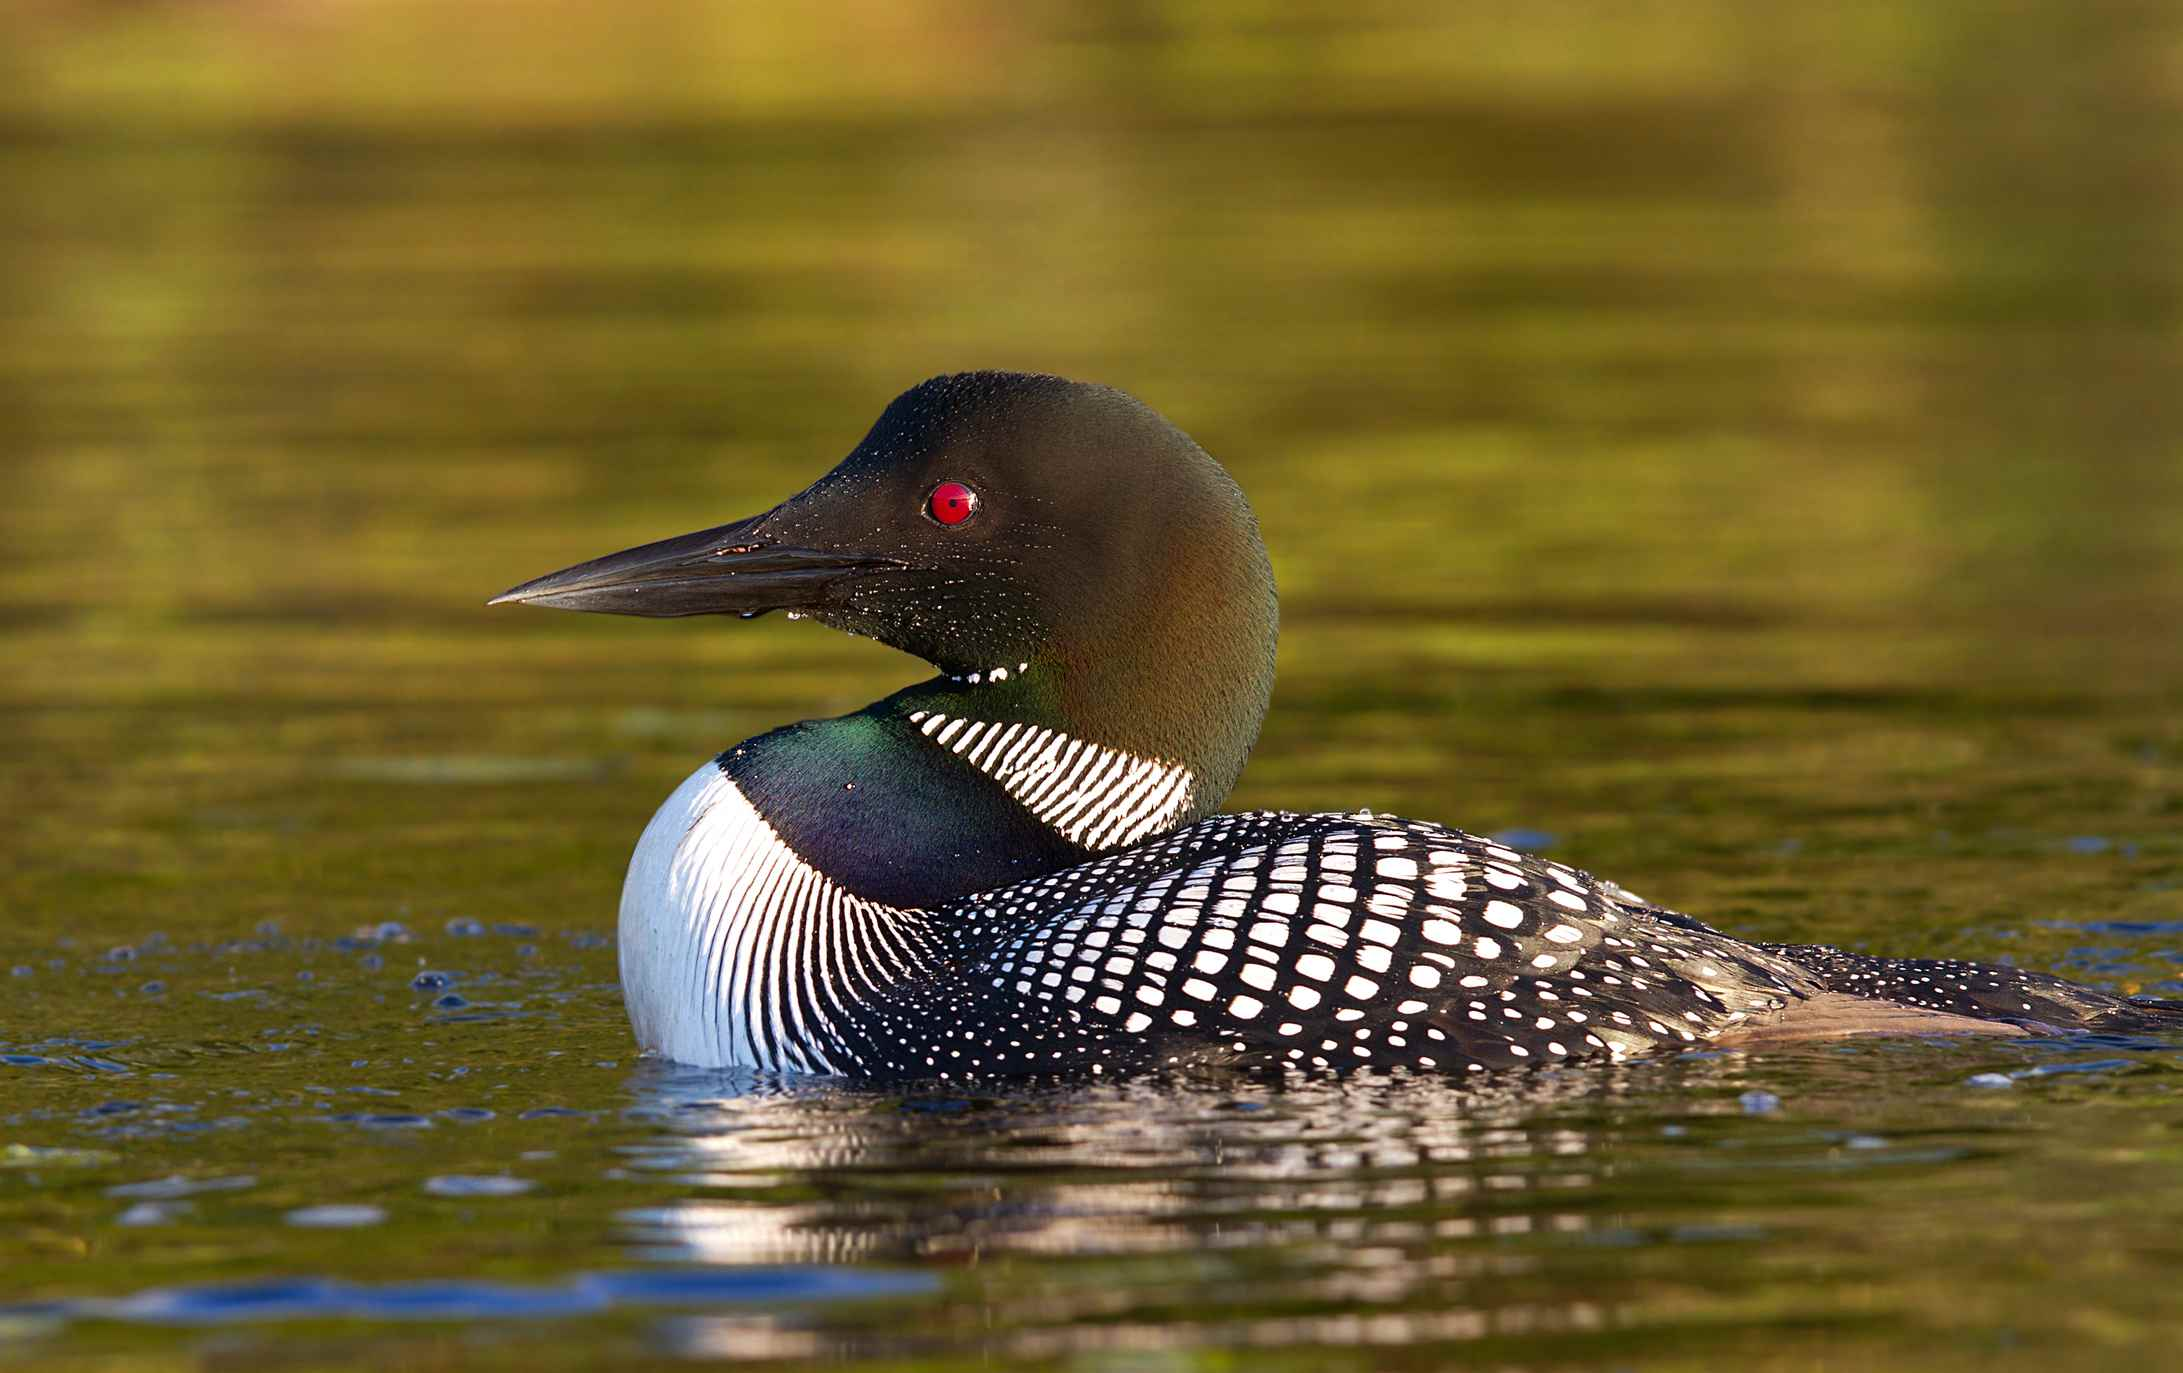 Loon swimming in water